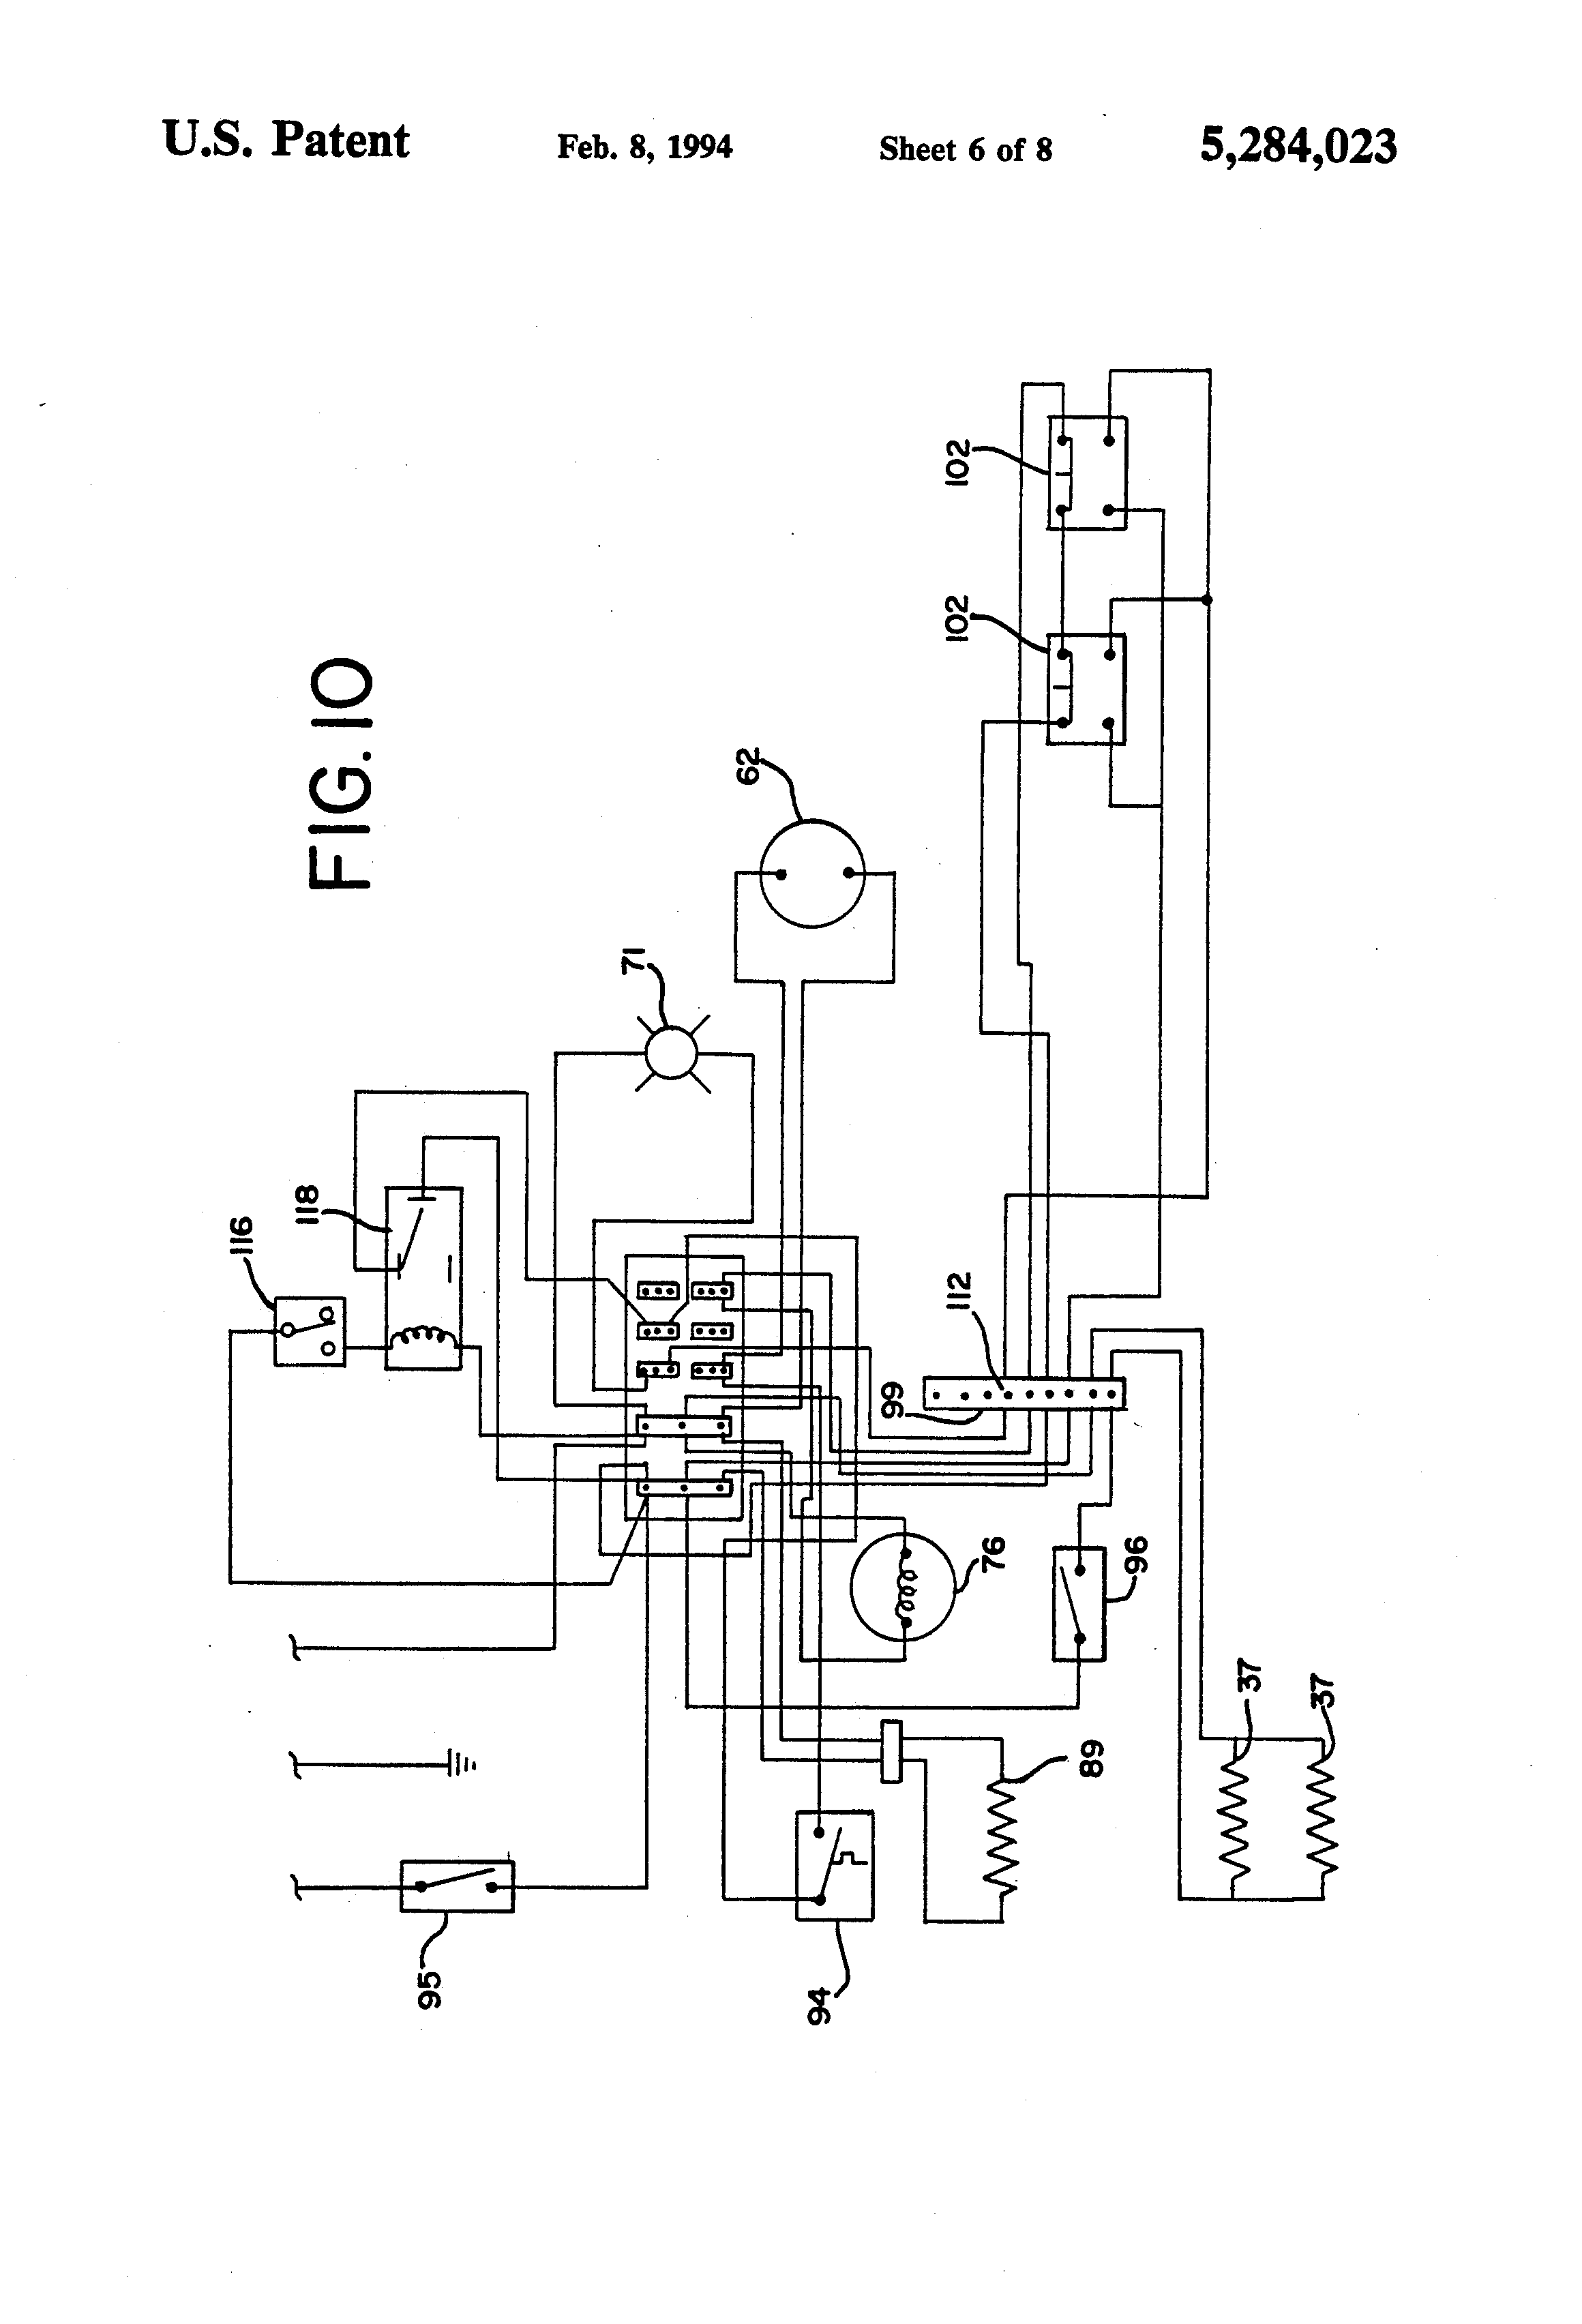 copeland freezer wiring schematic 33 wiring diagram images first company wiring diagrams us5284023 6 patent us5284023 reach in cooler with window google patents freezer schematic diagram at cita copeland freezer wiring